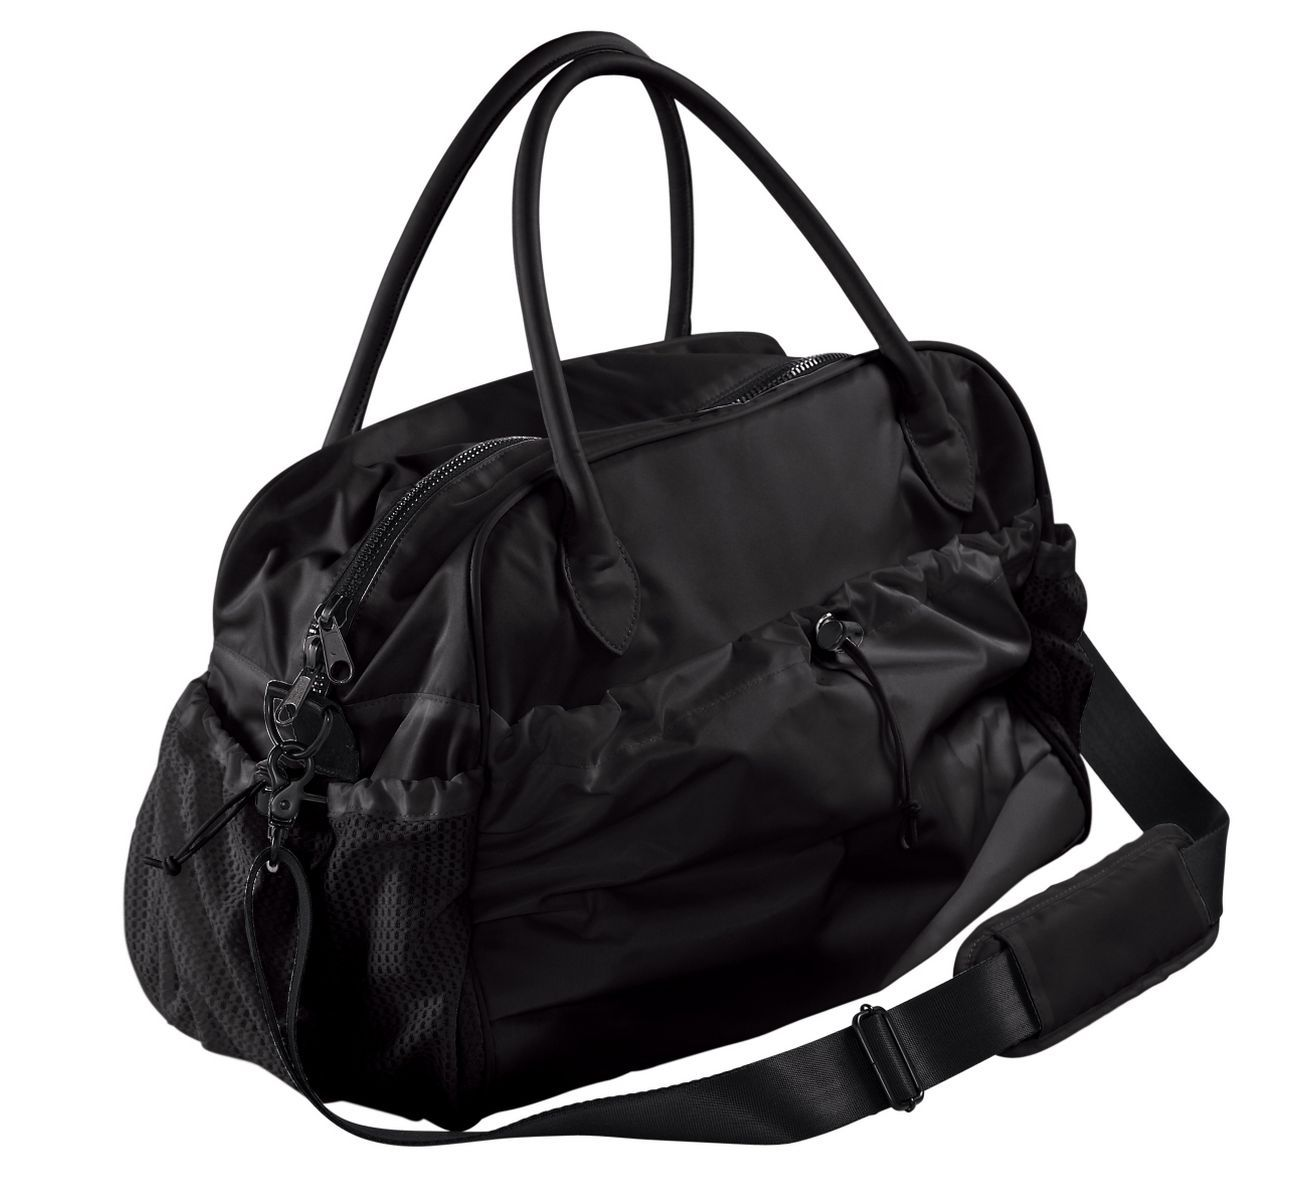 e6a74ec3 R-Gear Works Wonders Gym Bag | wants not needs | Gym bag, Gym, Bags